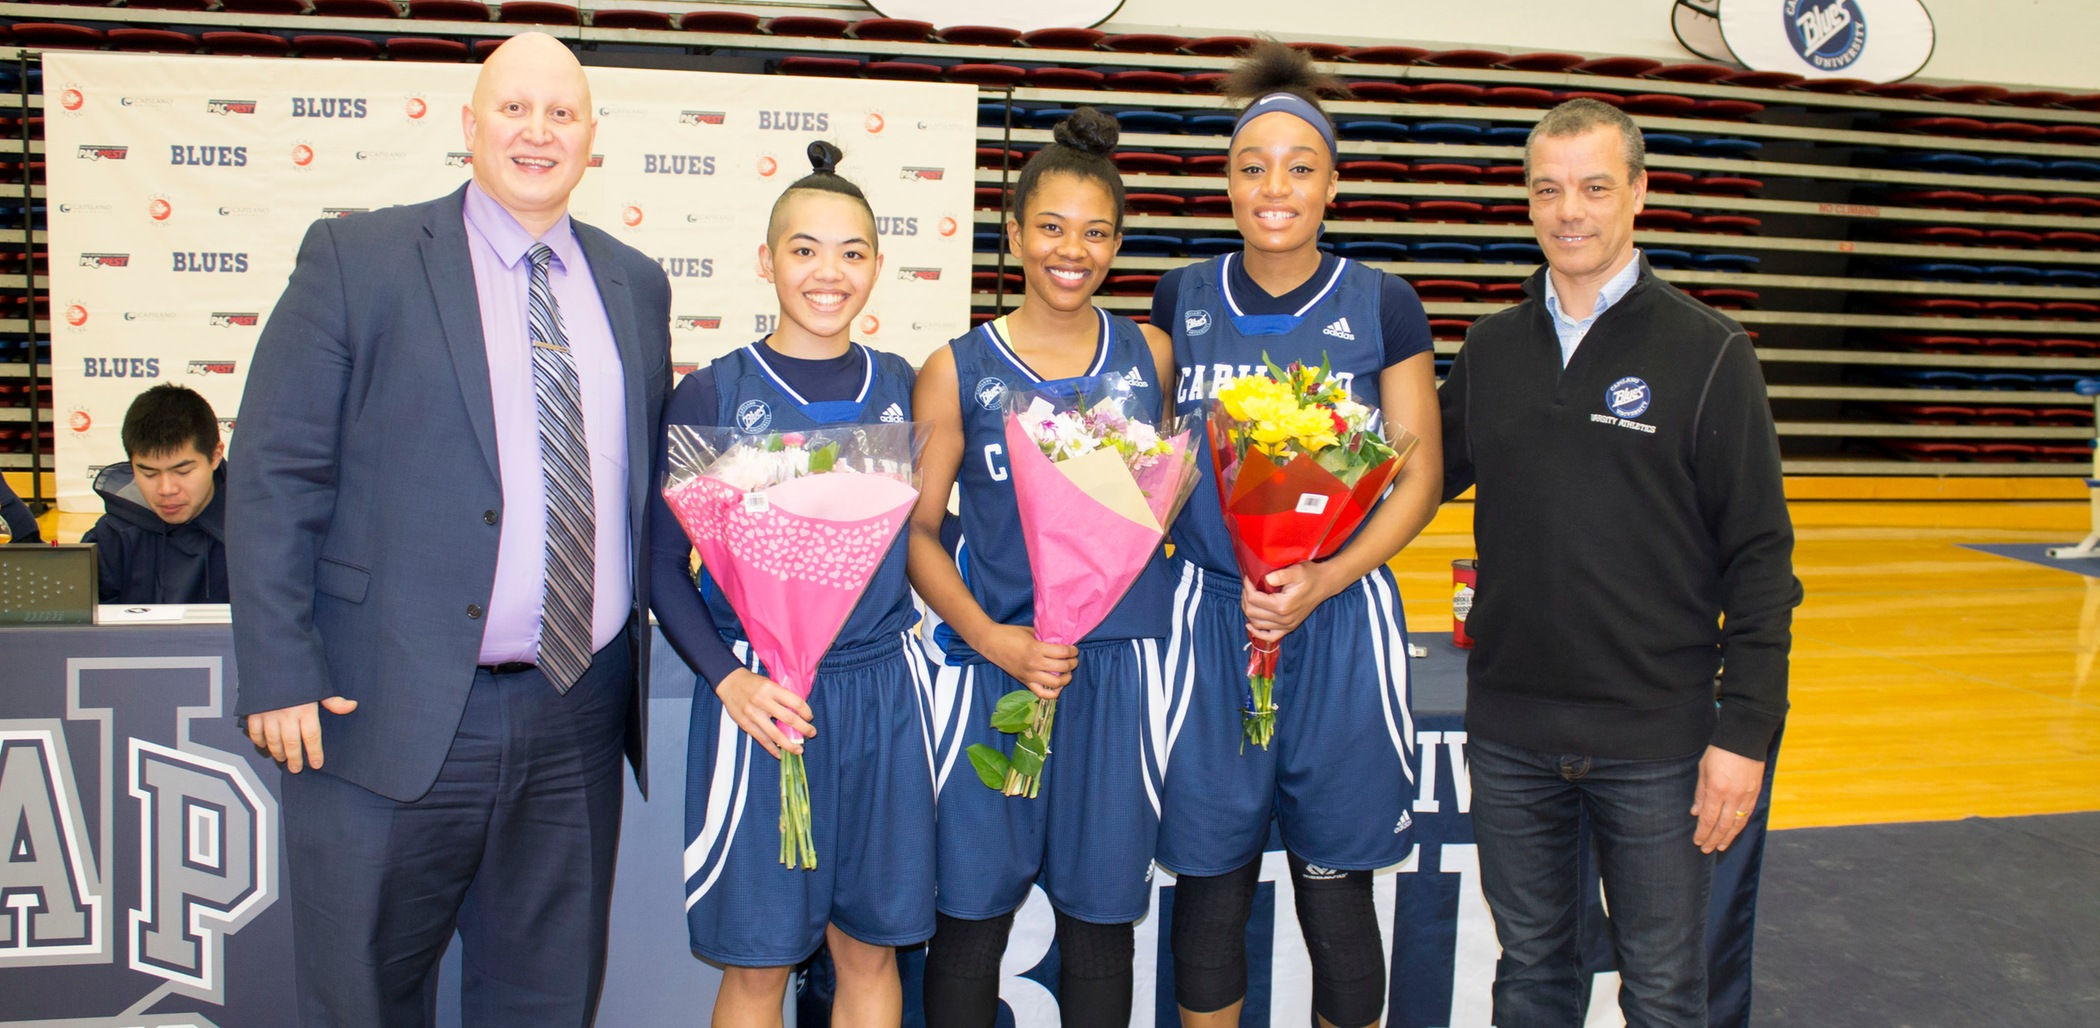 (L-R): Head Coach Ramin Sadaghiani, Ashley dela Cruz Yip, Francis Penafiel, Carmelle M'Bikata, Athletic Director Milt Williams. Photo Chris Raeside / Capilano University